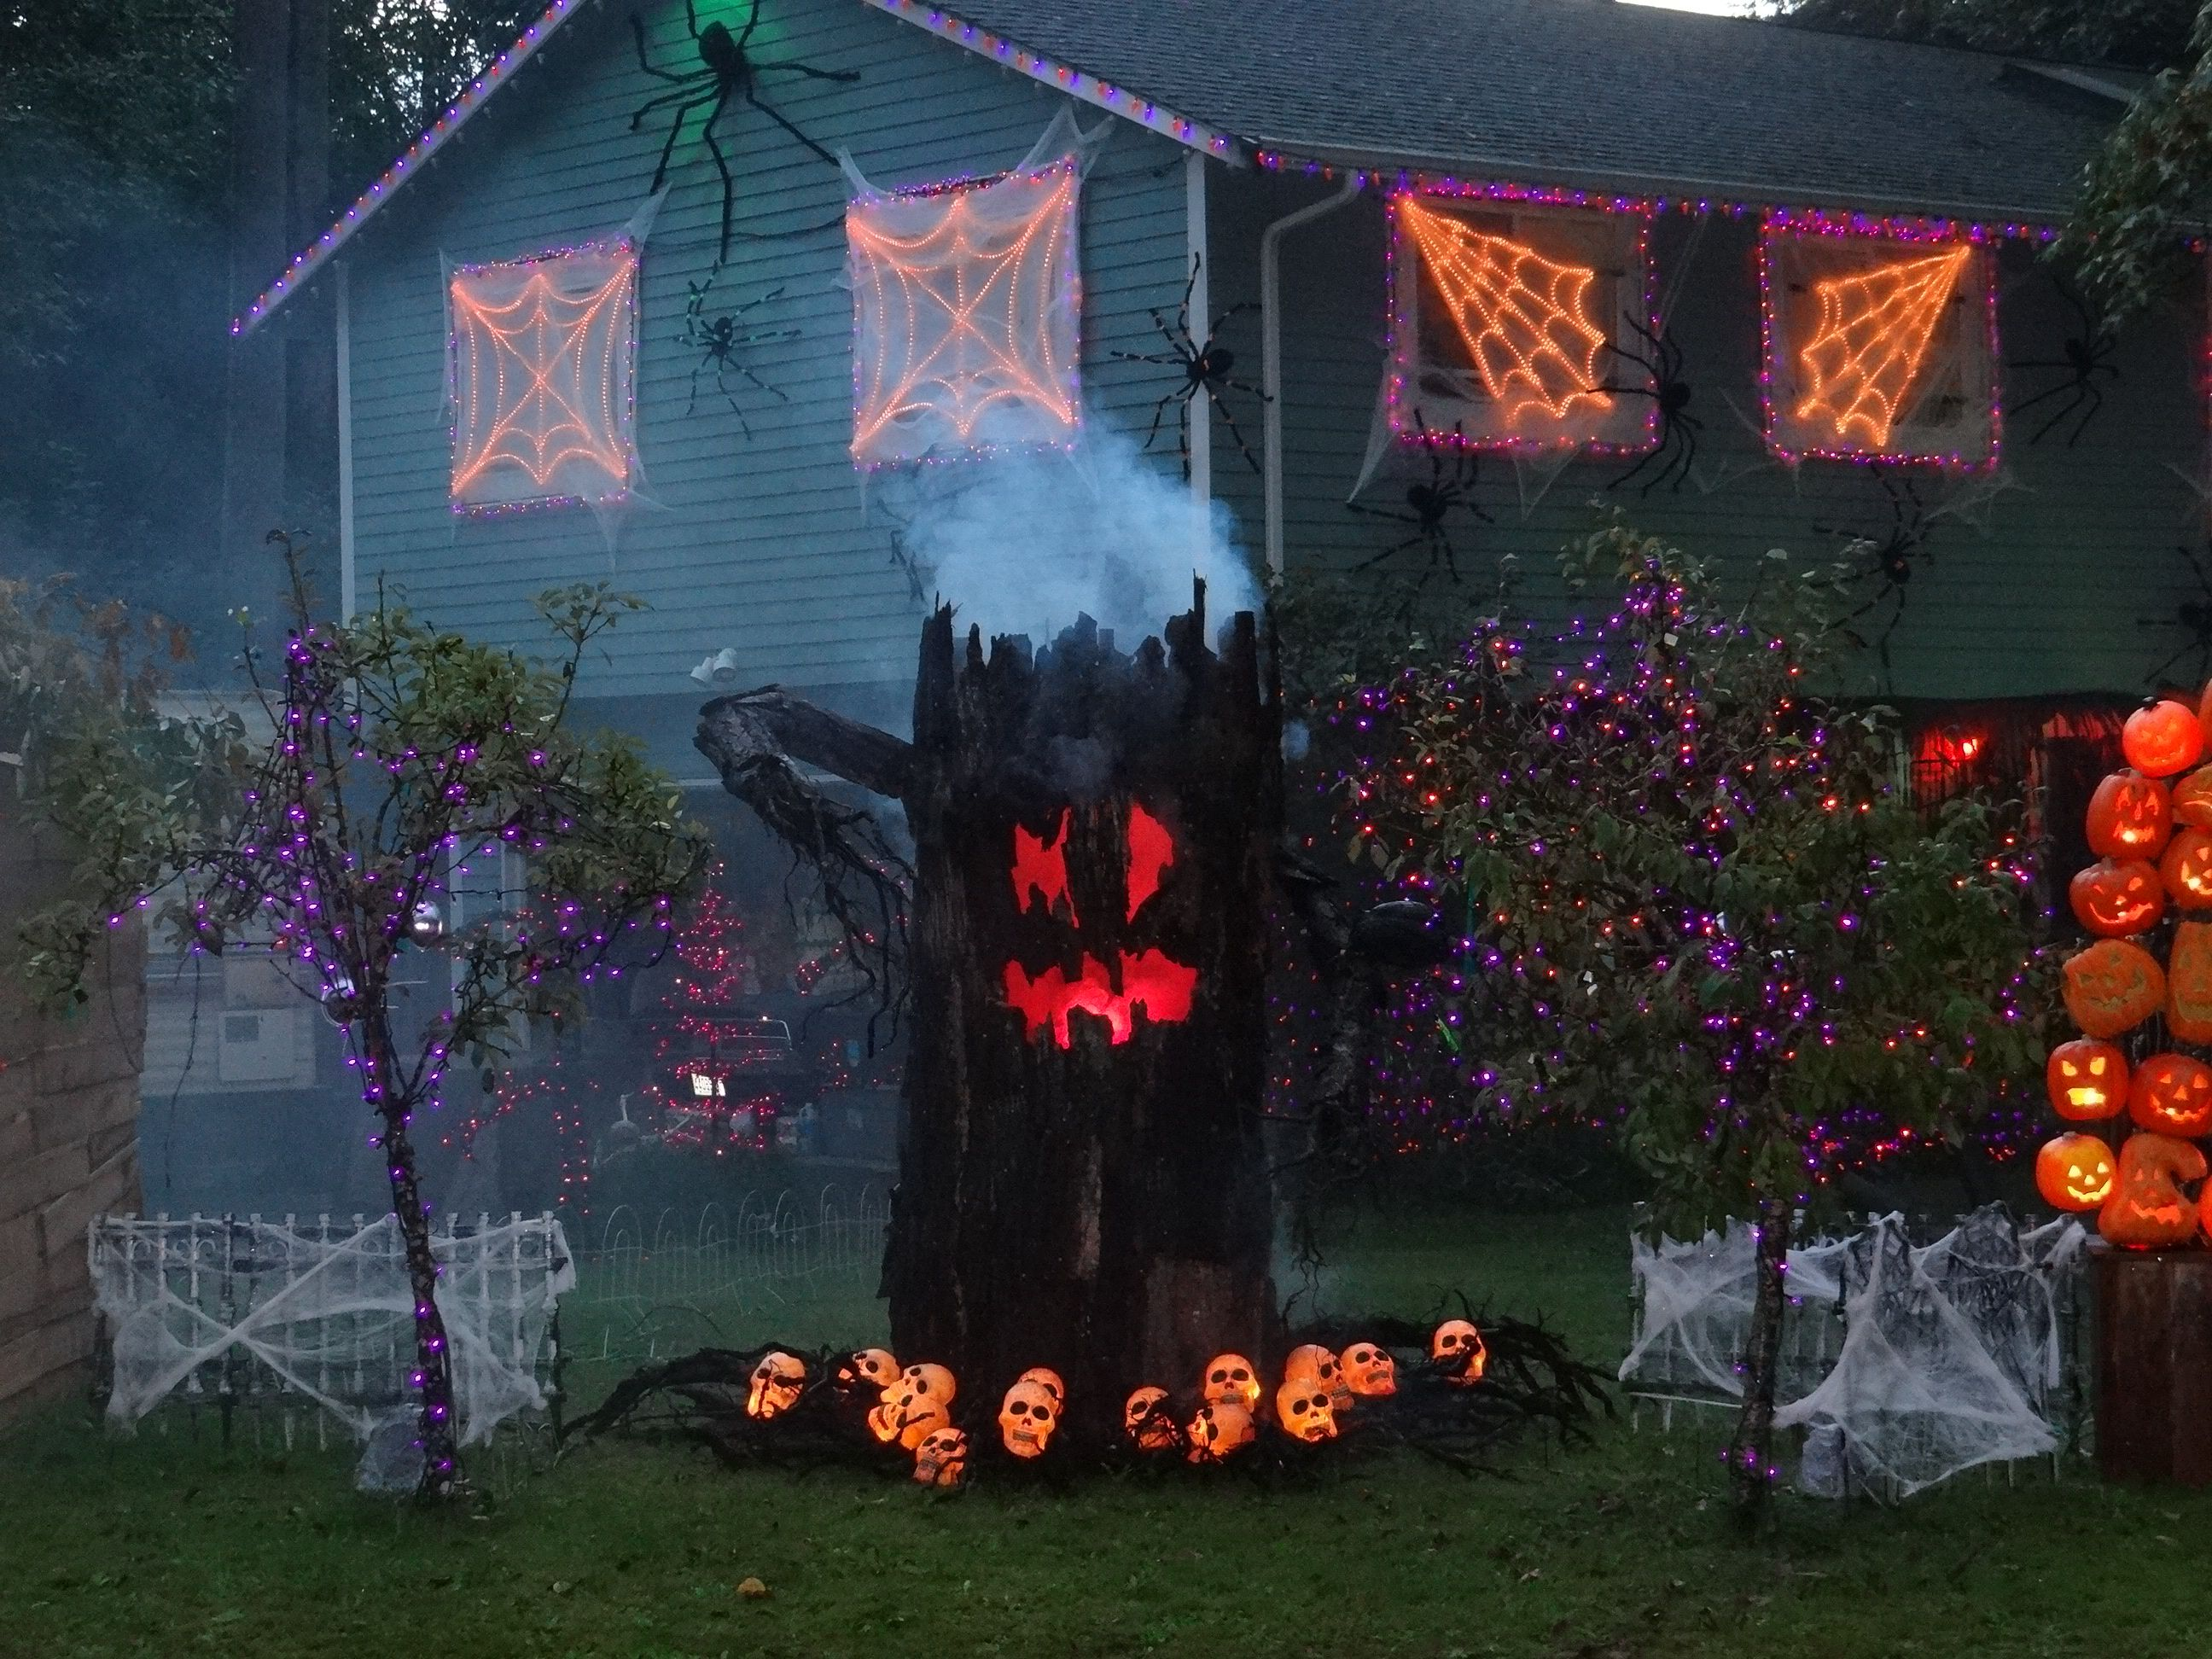 decoration cool decorating halloween outdoor with scary black tree and spyder also pumpkins for halloween outdoor design ideas wonderful halloween outdoor - Unique Halloween Decorations